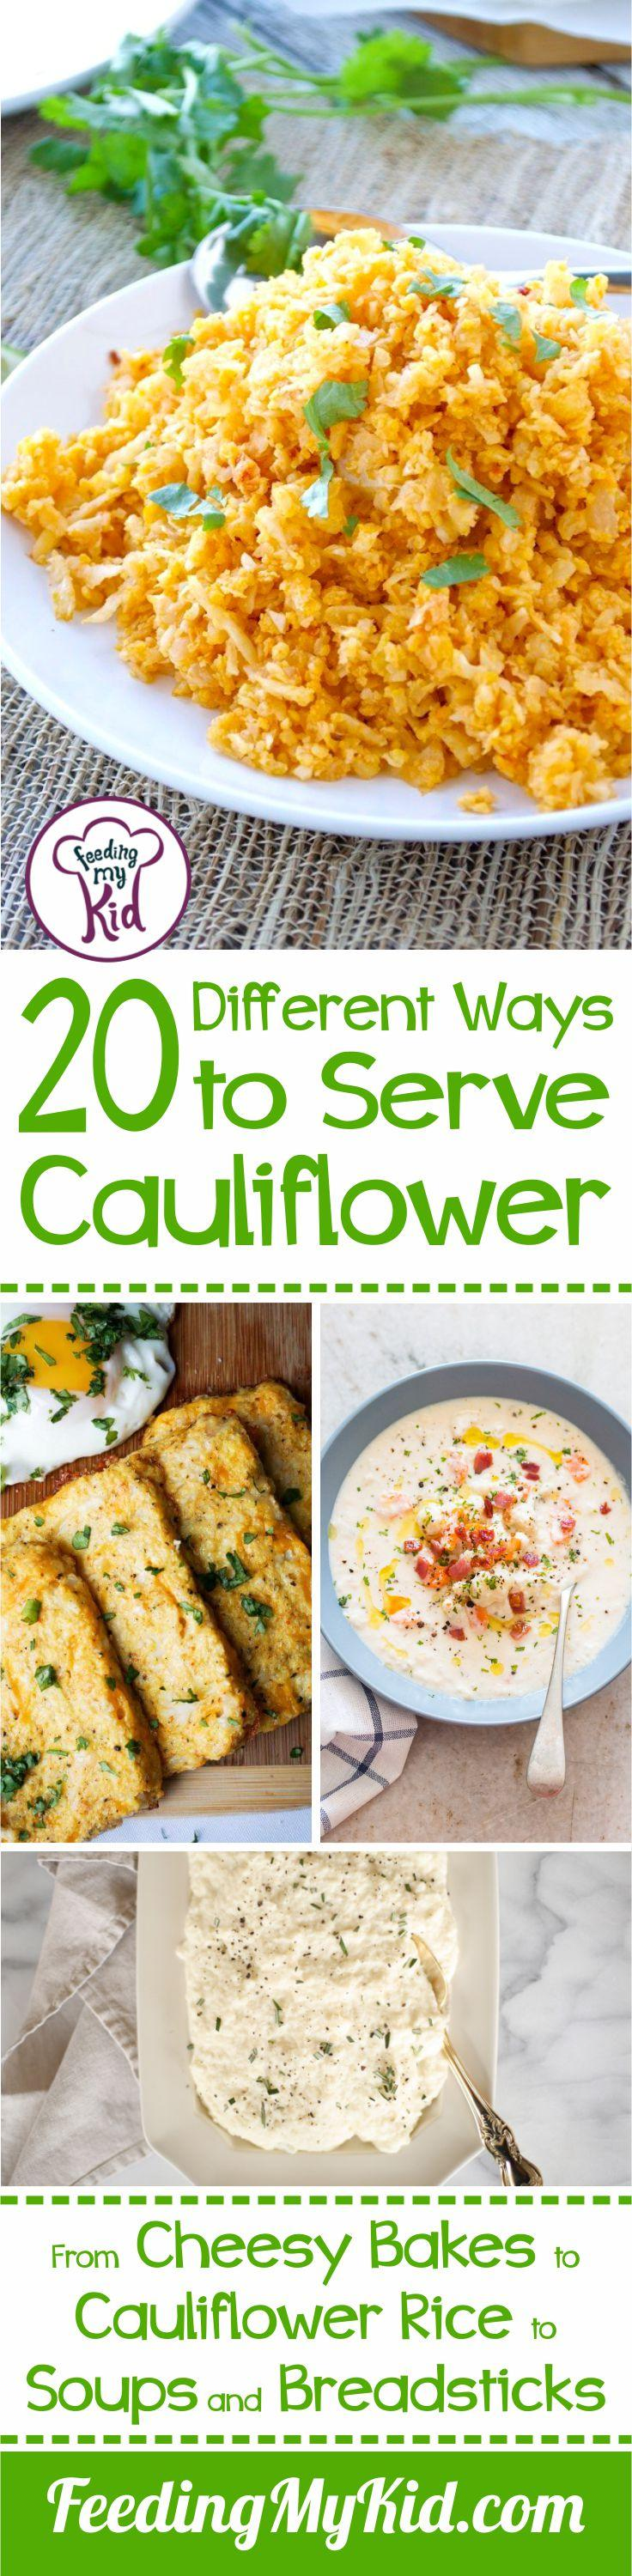 There are so many different ways to serve cauliflower! You'll love the variety of these cauliflower recipes. Try one out tonight.